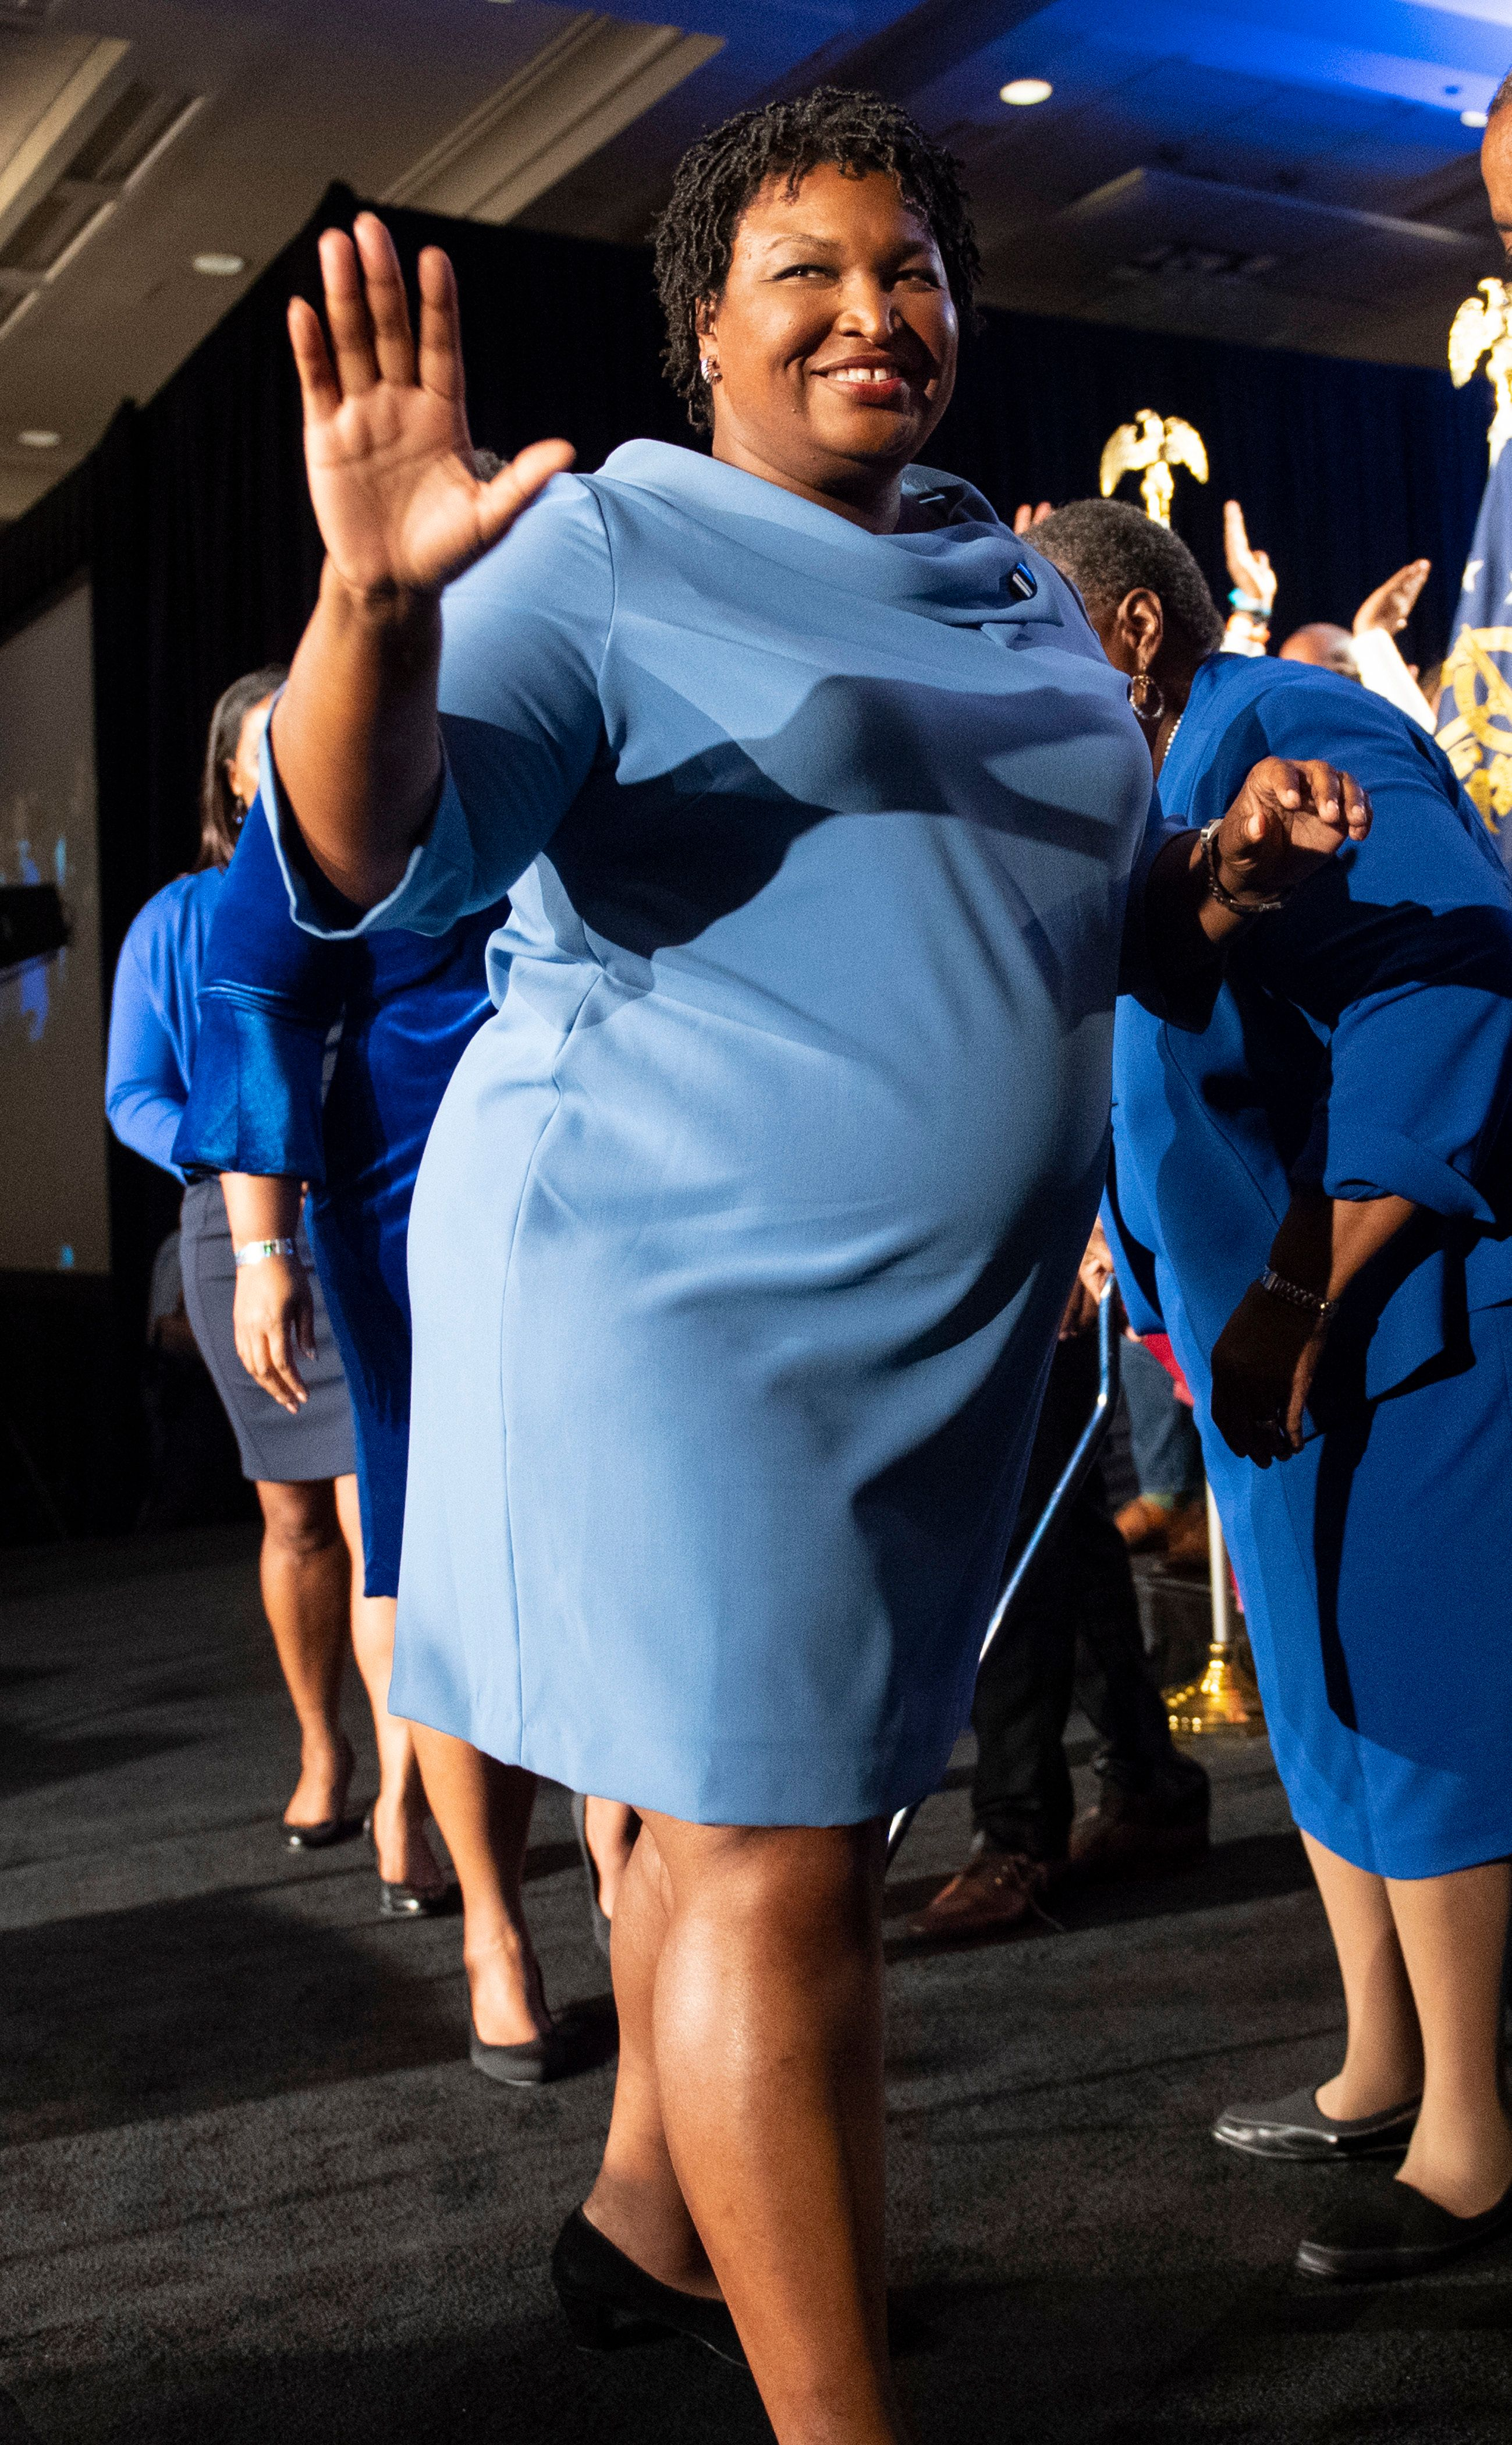 Georgia Democratic gubernatorial candidate Stacey Abrams leaves the stage after addressing supporters during an election night watch party, Tuesday, Nov. 6, 2018, in Atlanta. Abrams expects a runoff with Republican opponent Brian Kemp. (AP Photo/John Amis)